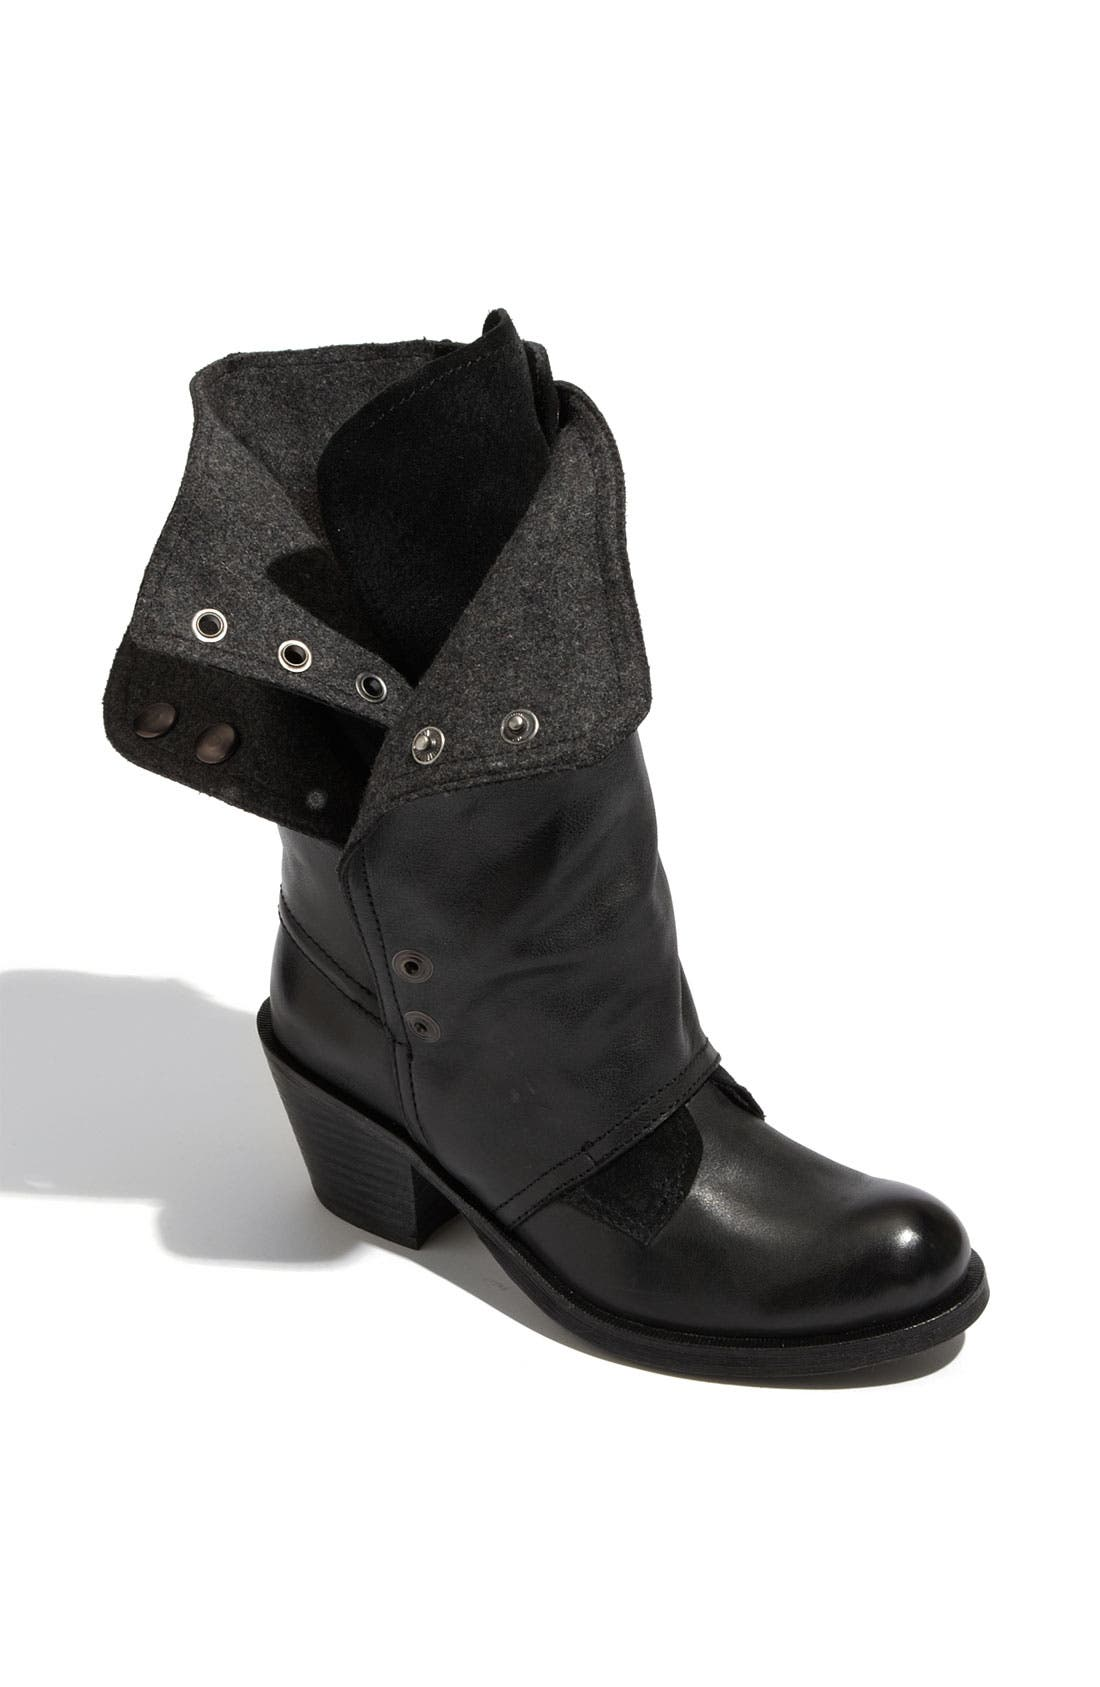 'Brady' Boot,                         Main,                         color, Black Leather